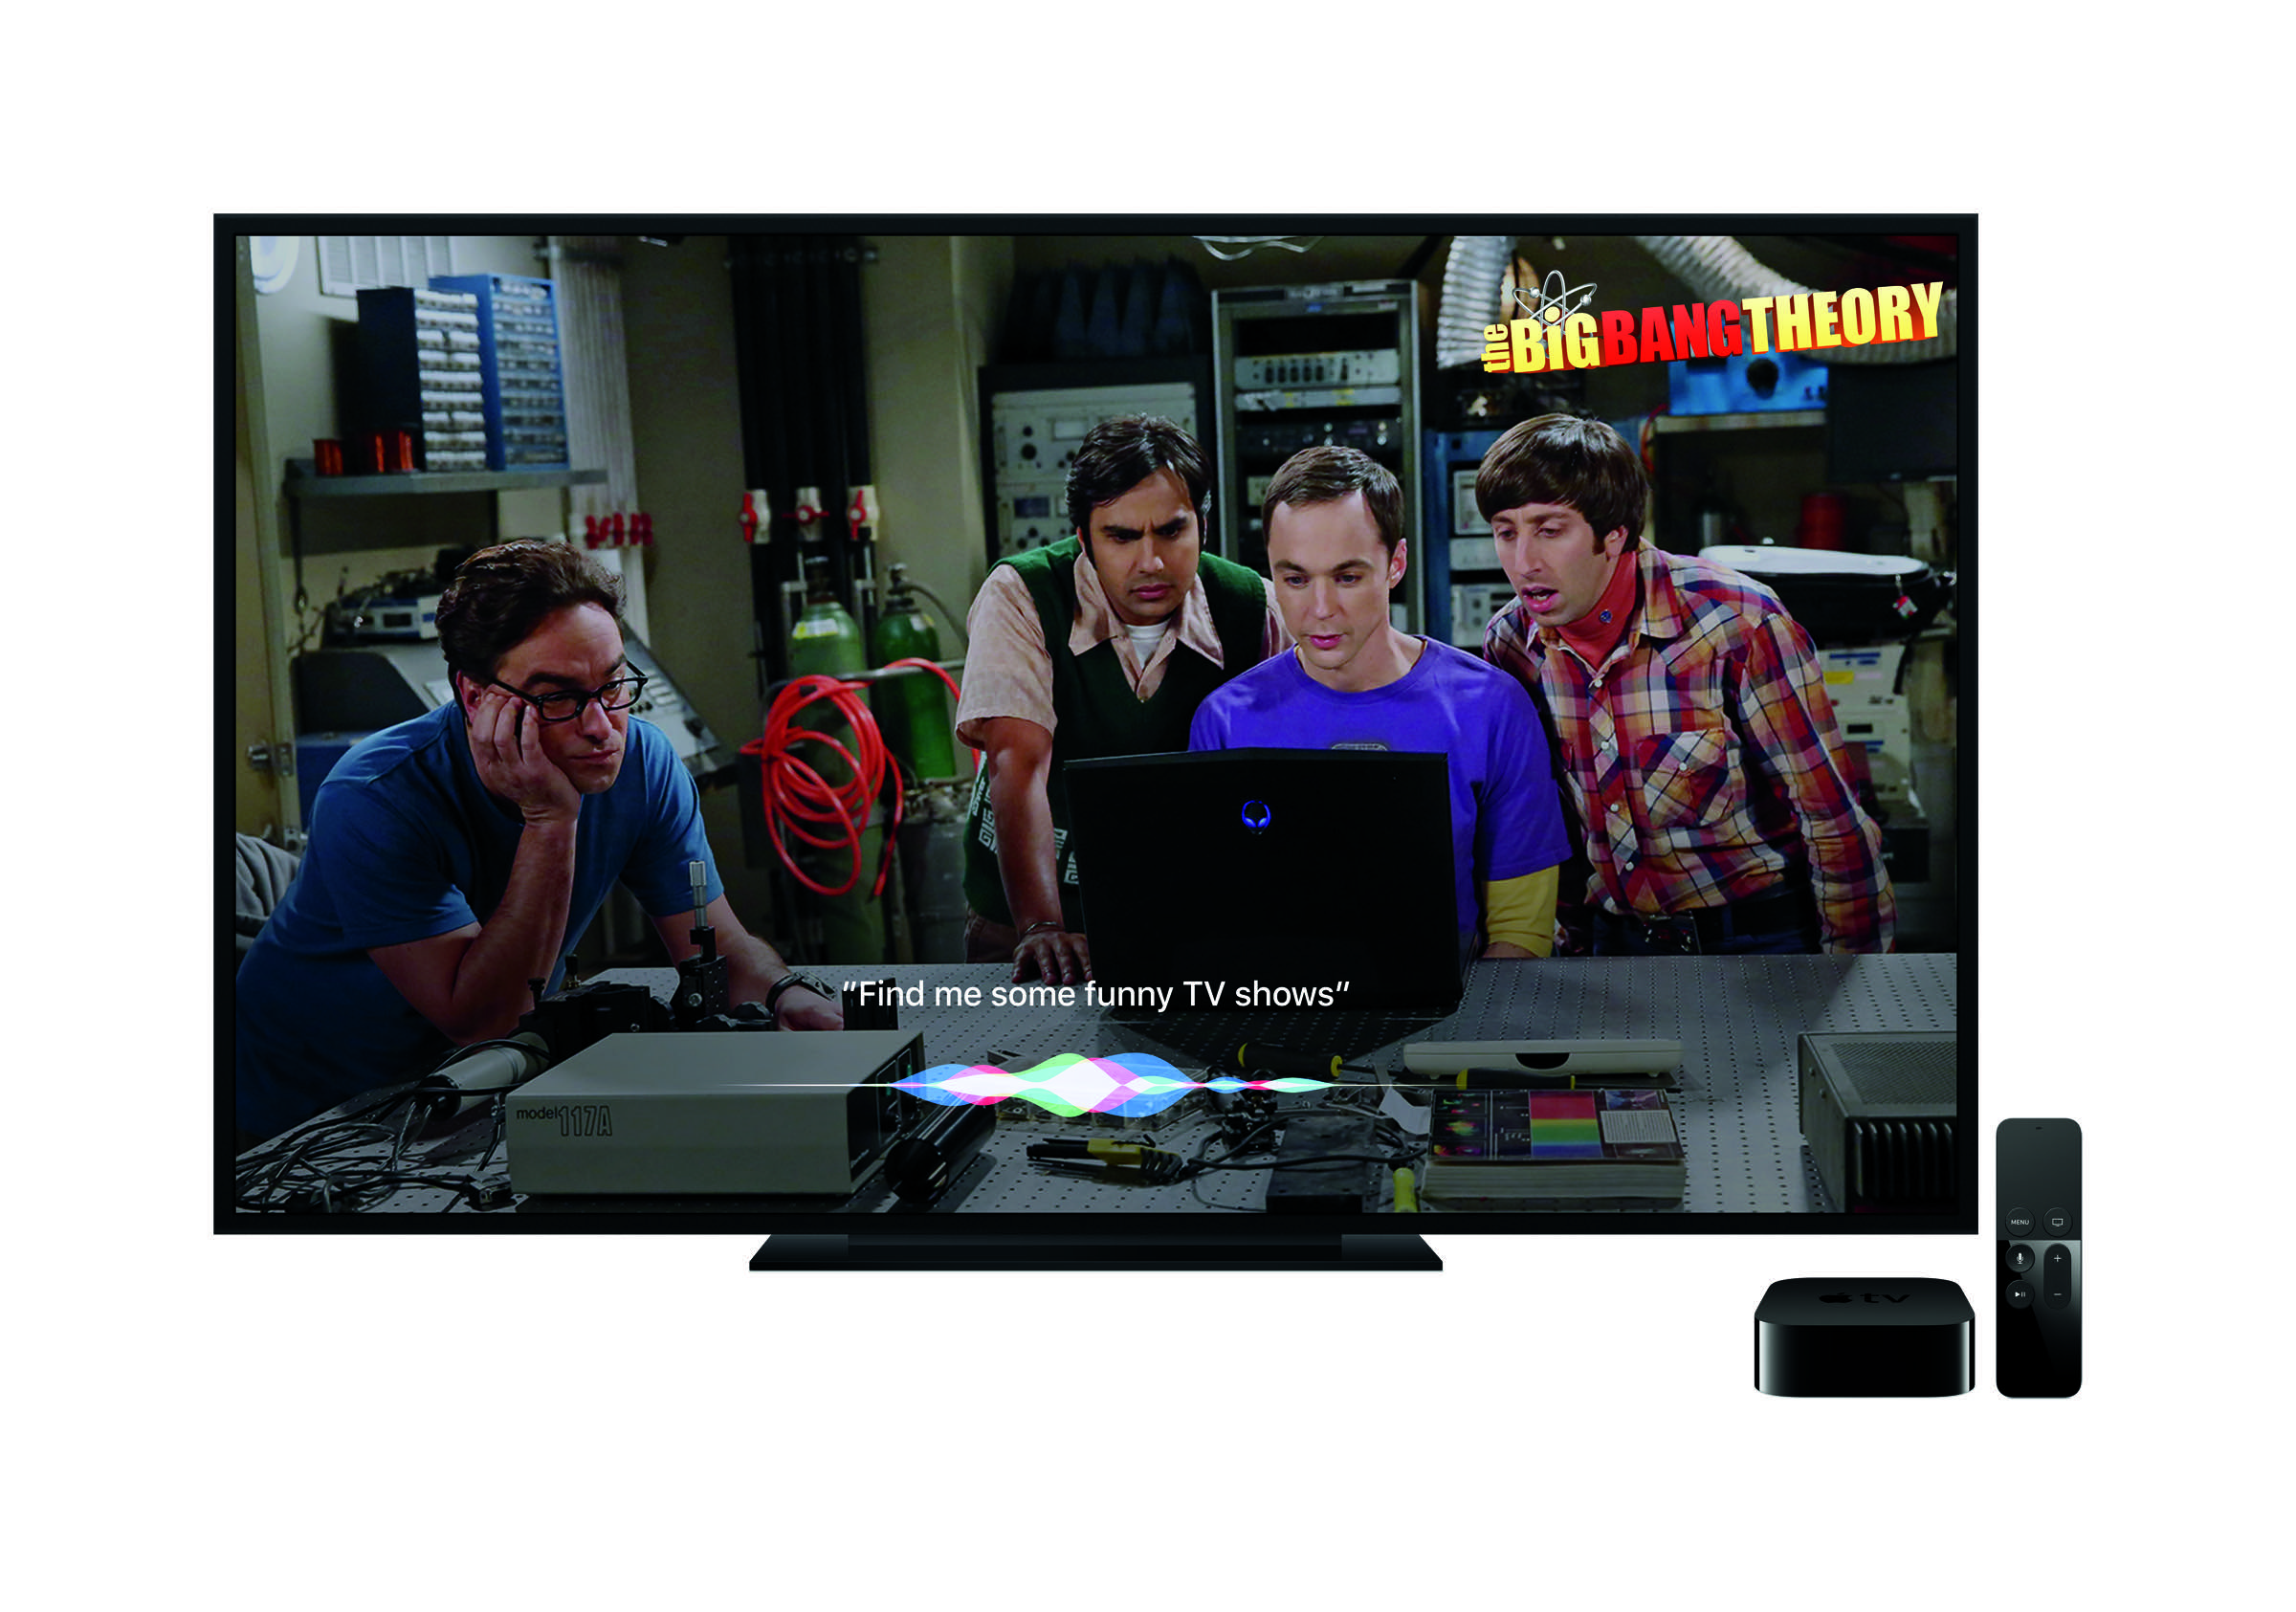 TV_AppleTV_Remote_Siri-Question-BigBangTheory-PRINT